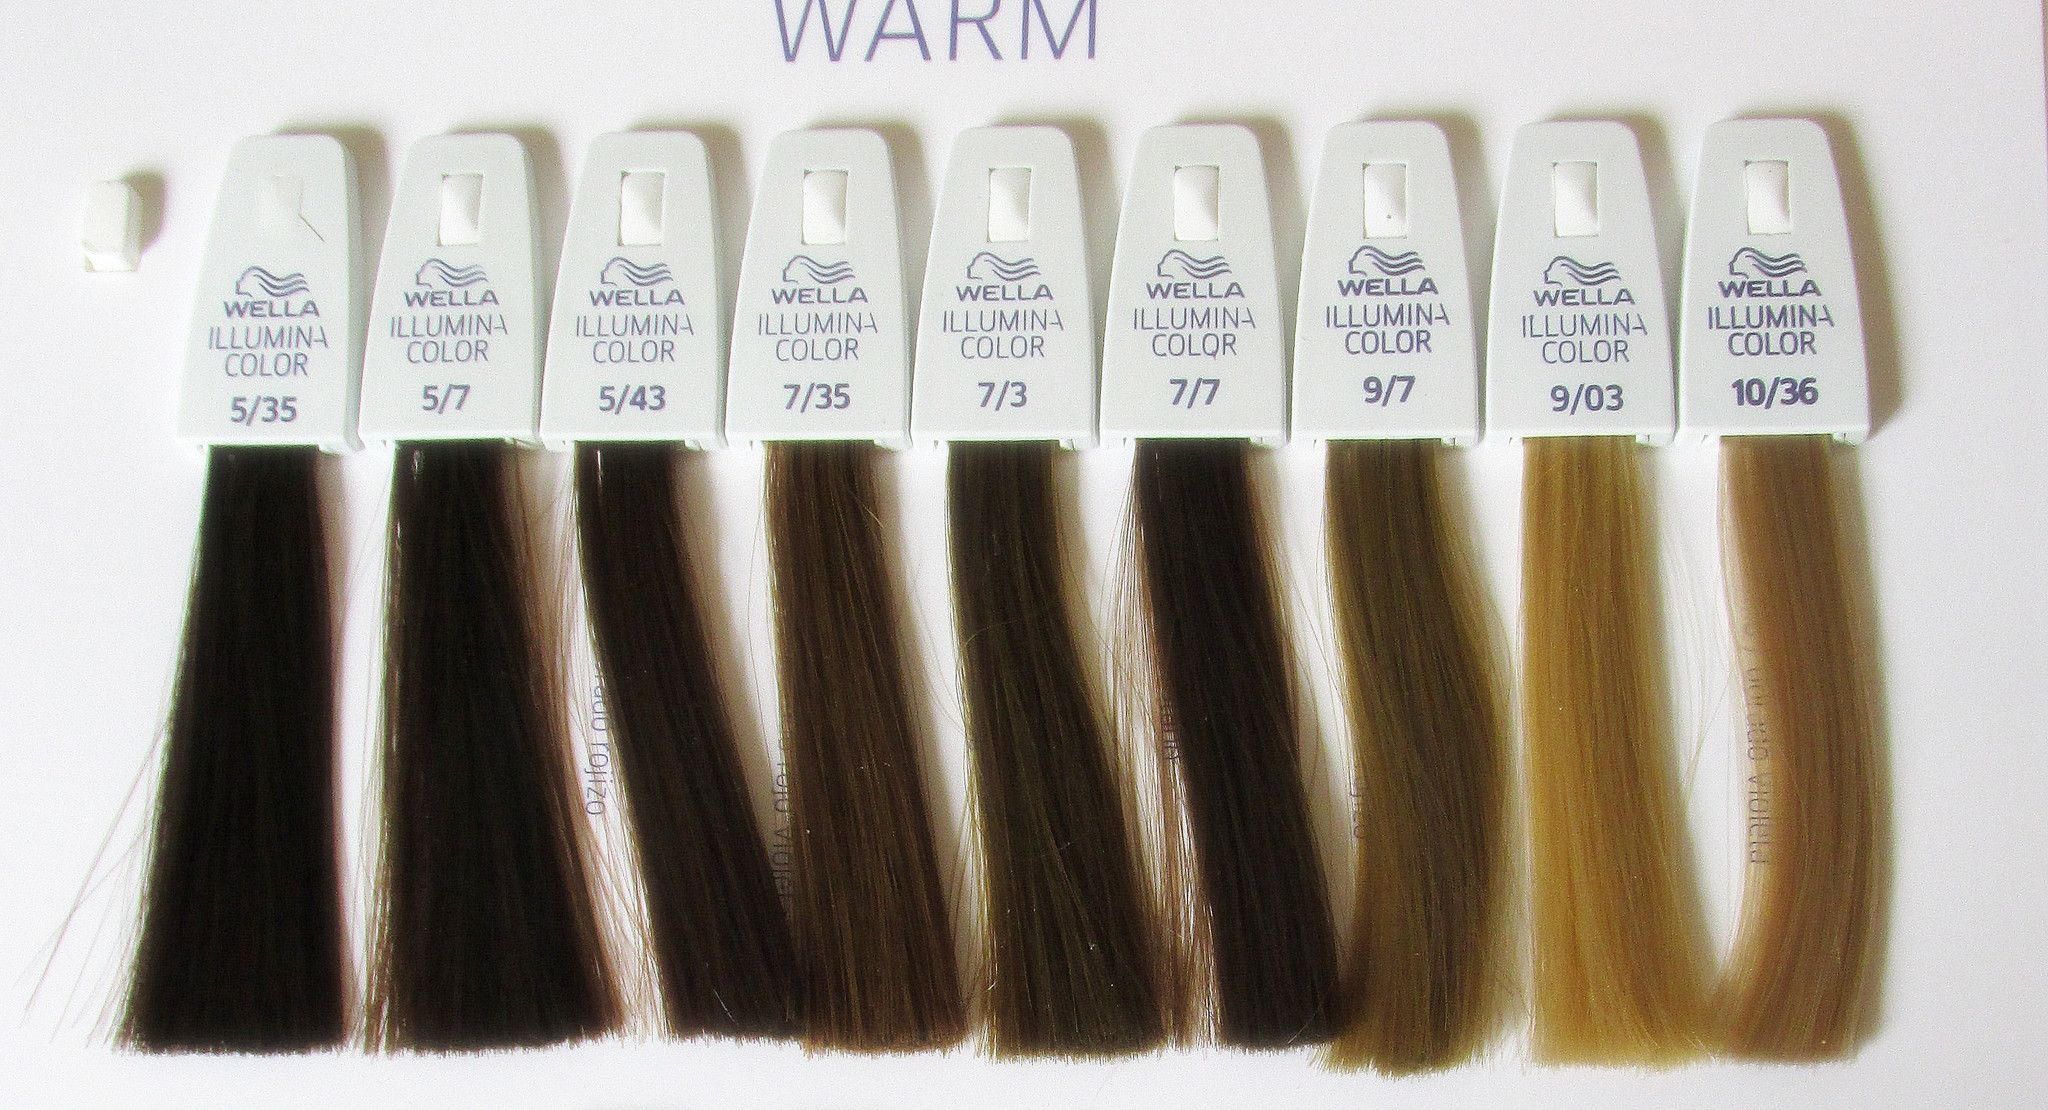 illumina hair color shades - Google Search | Hair Ideas ...